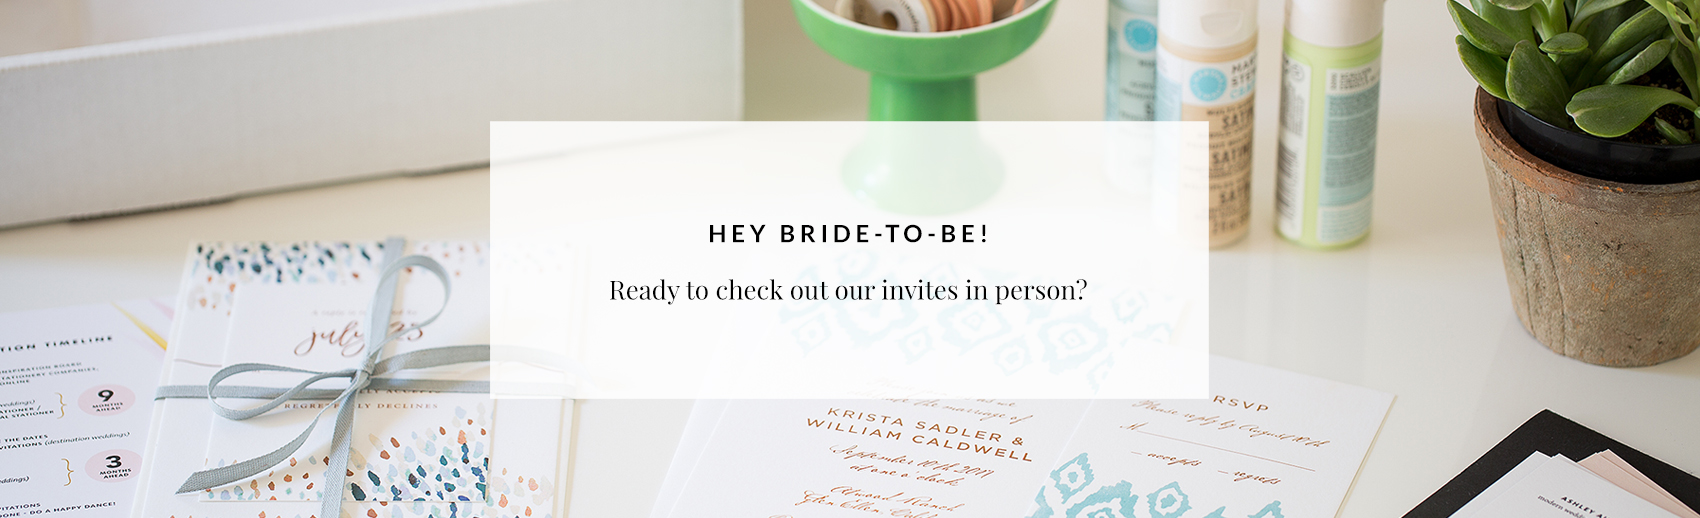 Free wedding invitation samples by mail.